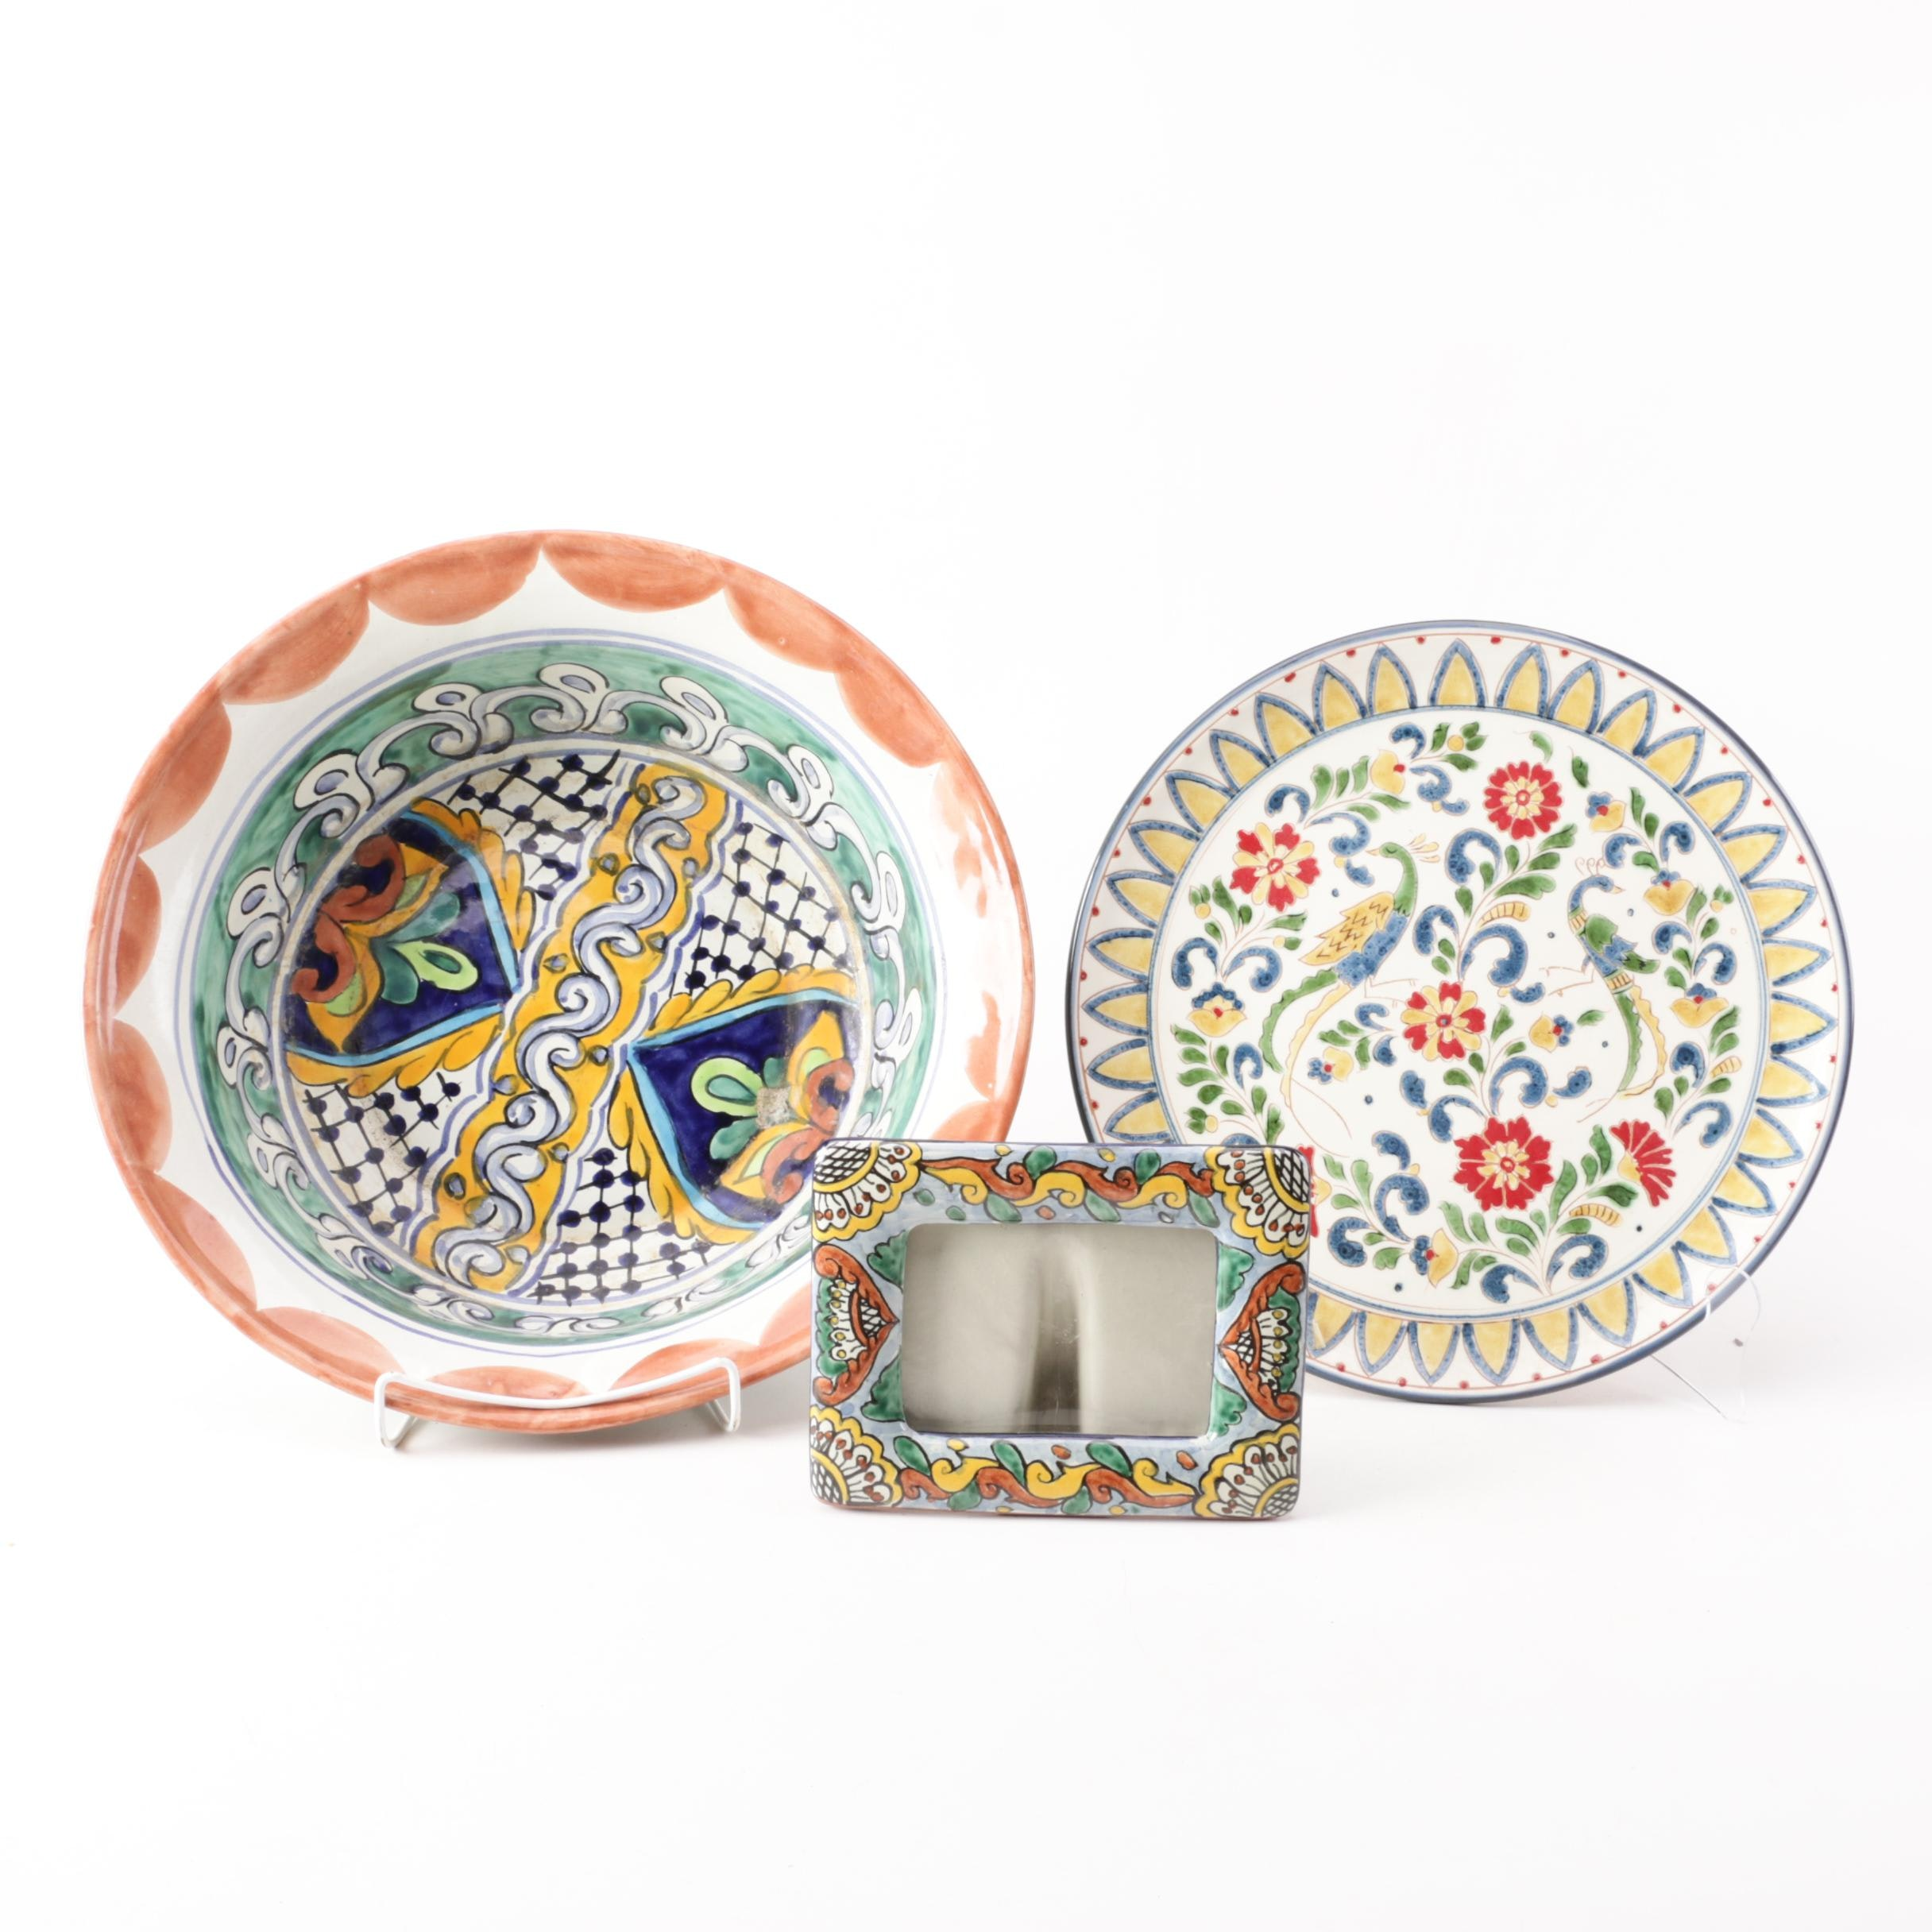 Hand-Painted Mexican Pottery Bowl, Plate, and Picture Frame including Talavera